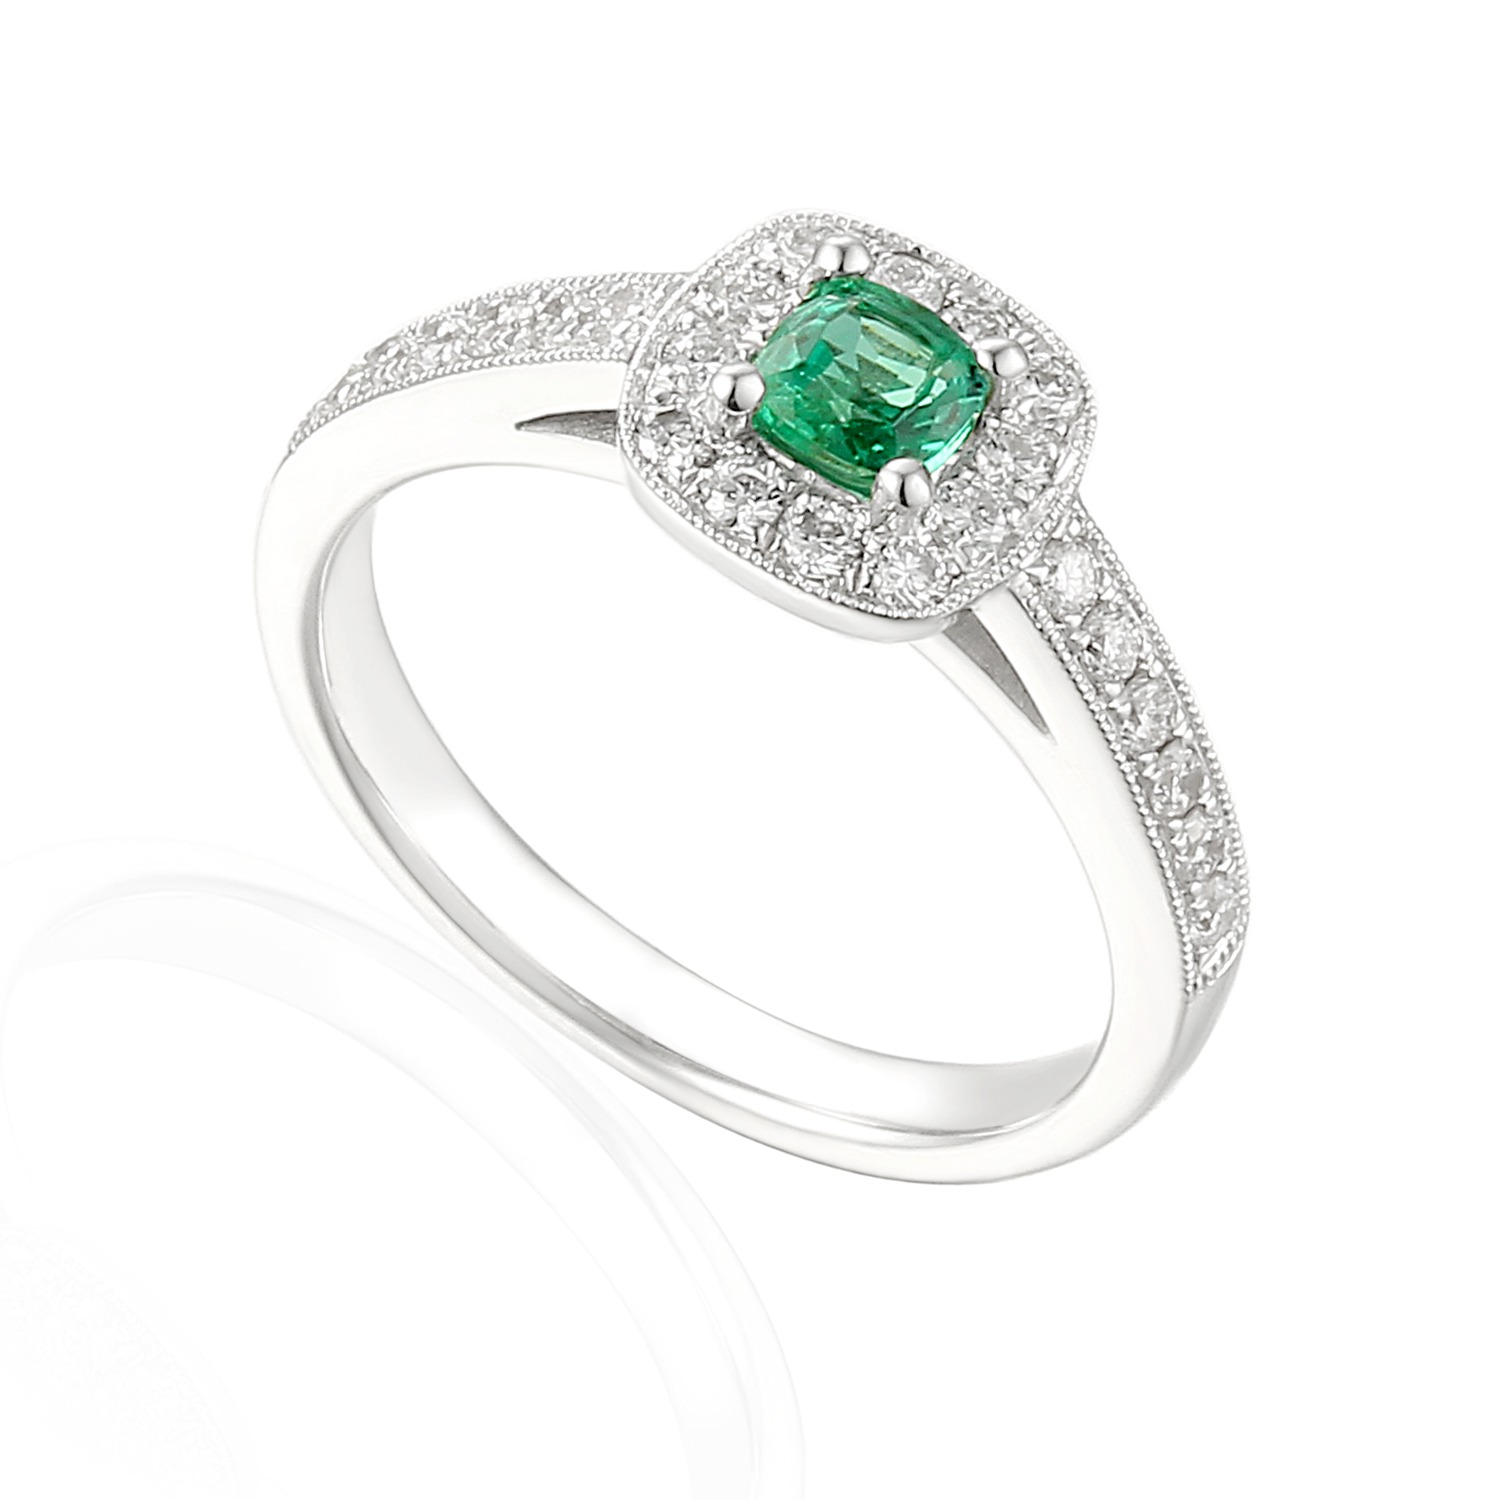 emerald ring cushion worldwide cut itm engagement size diamond white fast gold and shipping